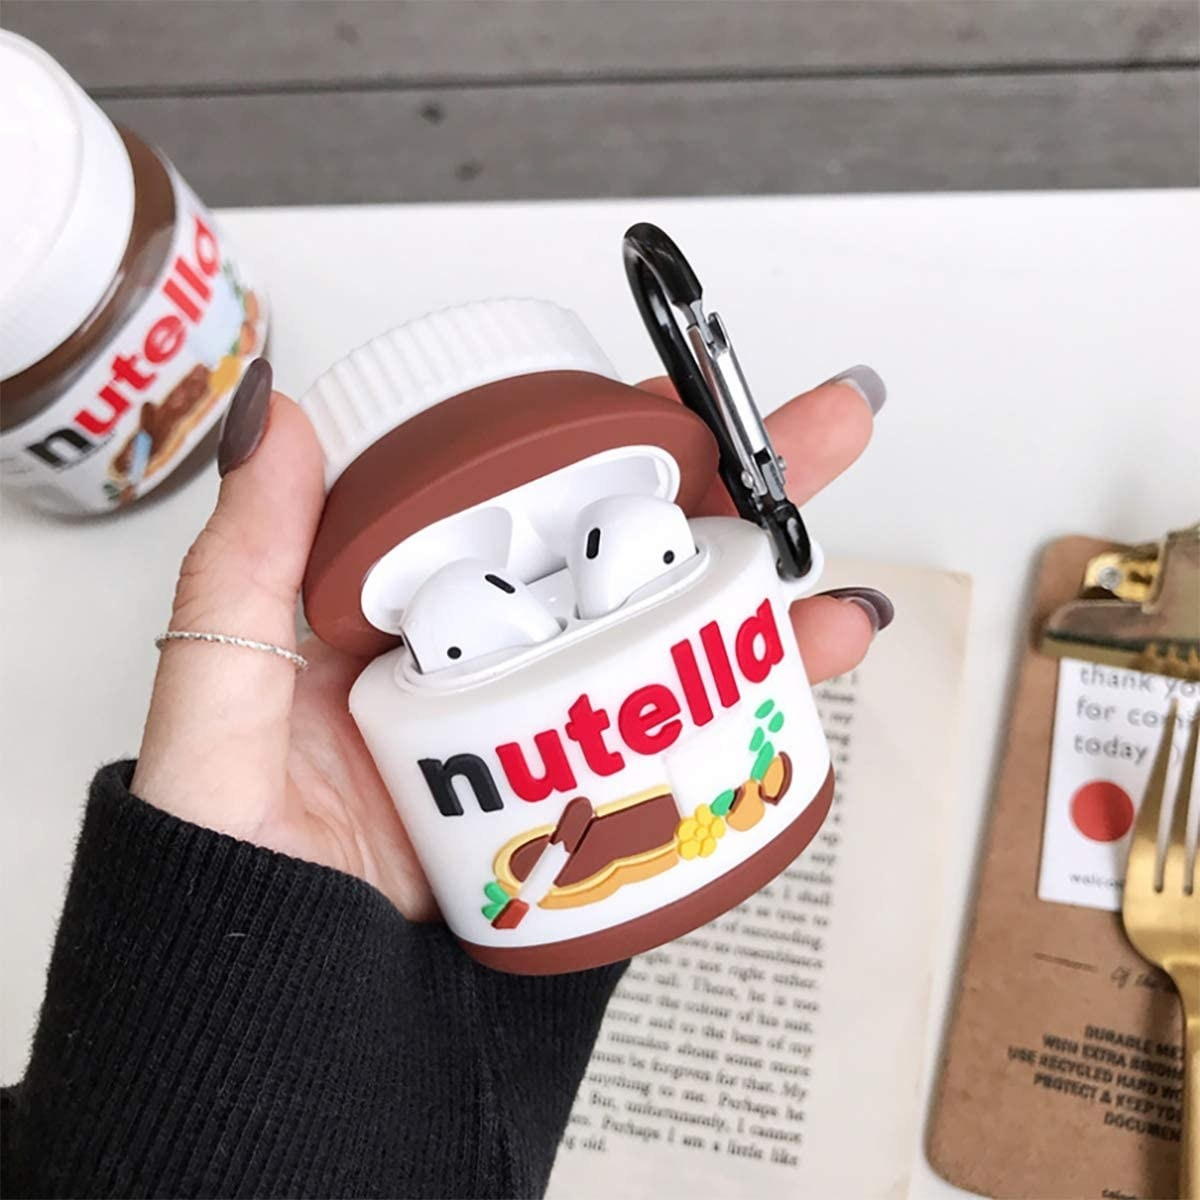 An AirPods case that looks like a jar of Nutella